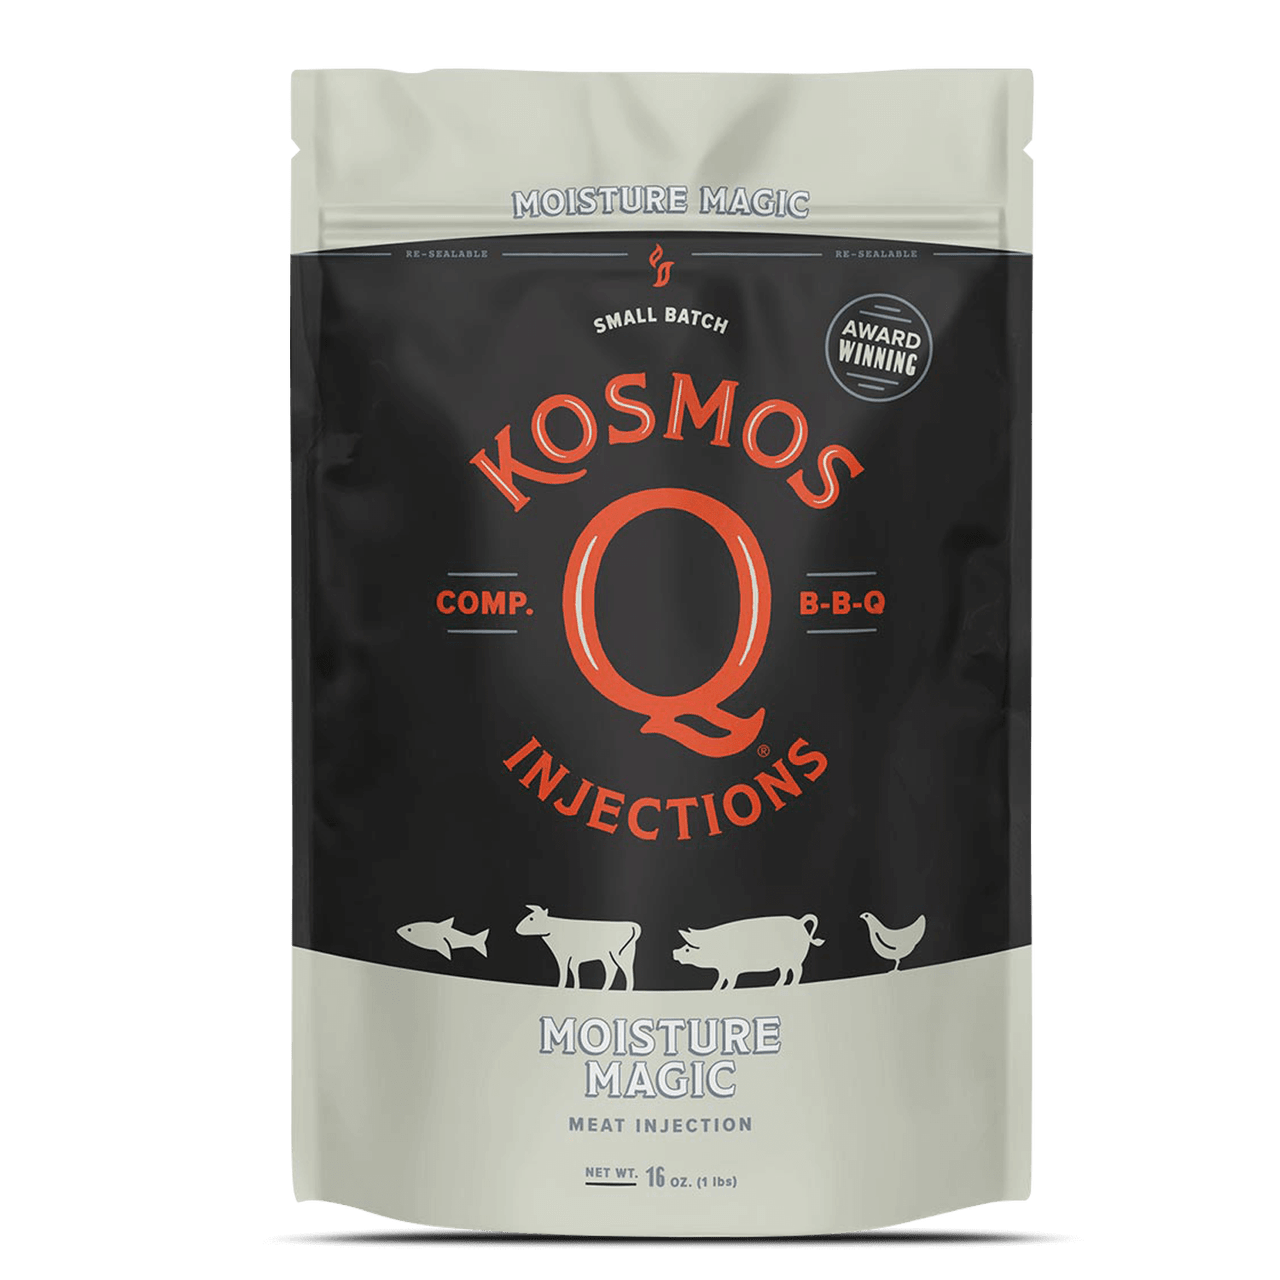 Kosmos Q BBQ Injection Kosmo's Q Moisture Magic Injection